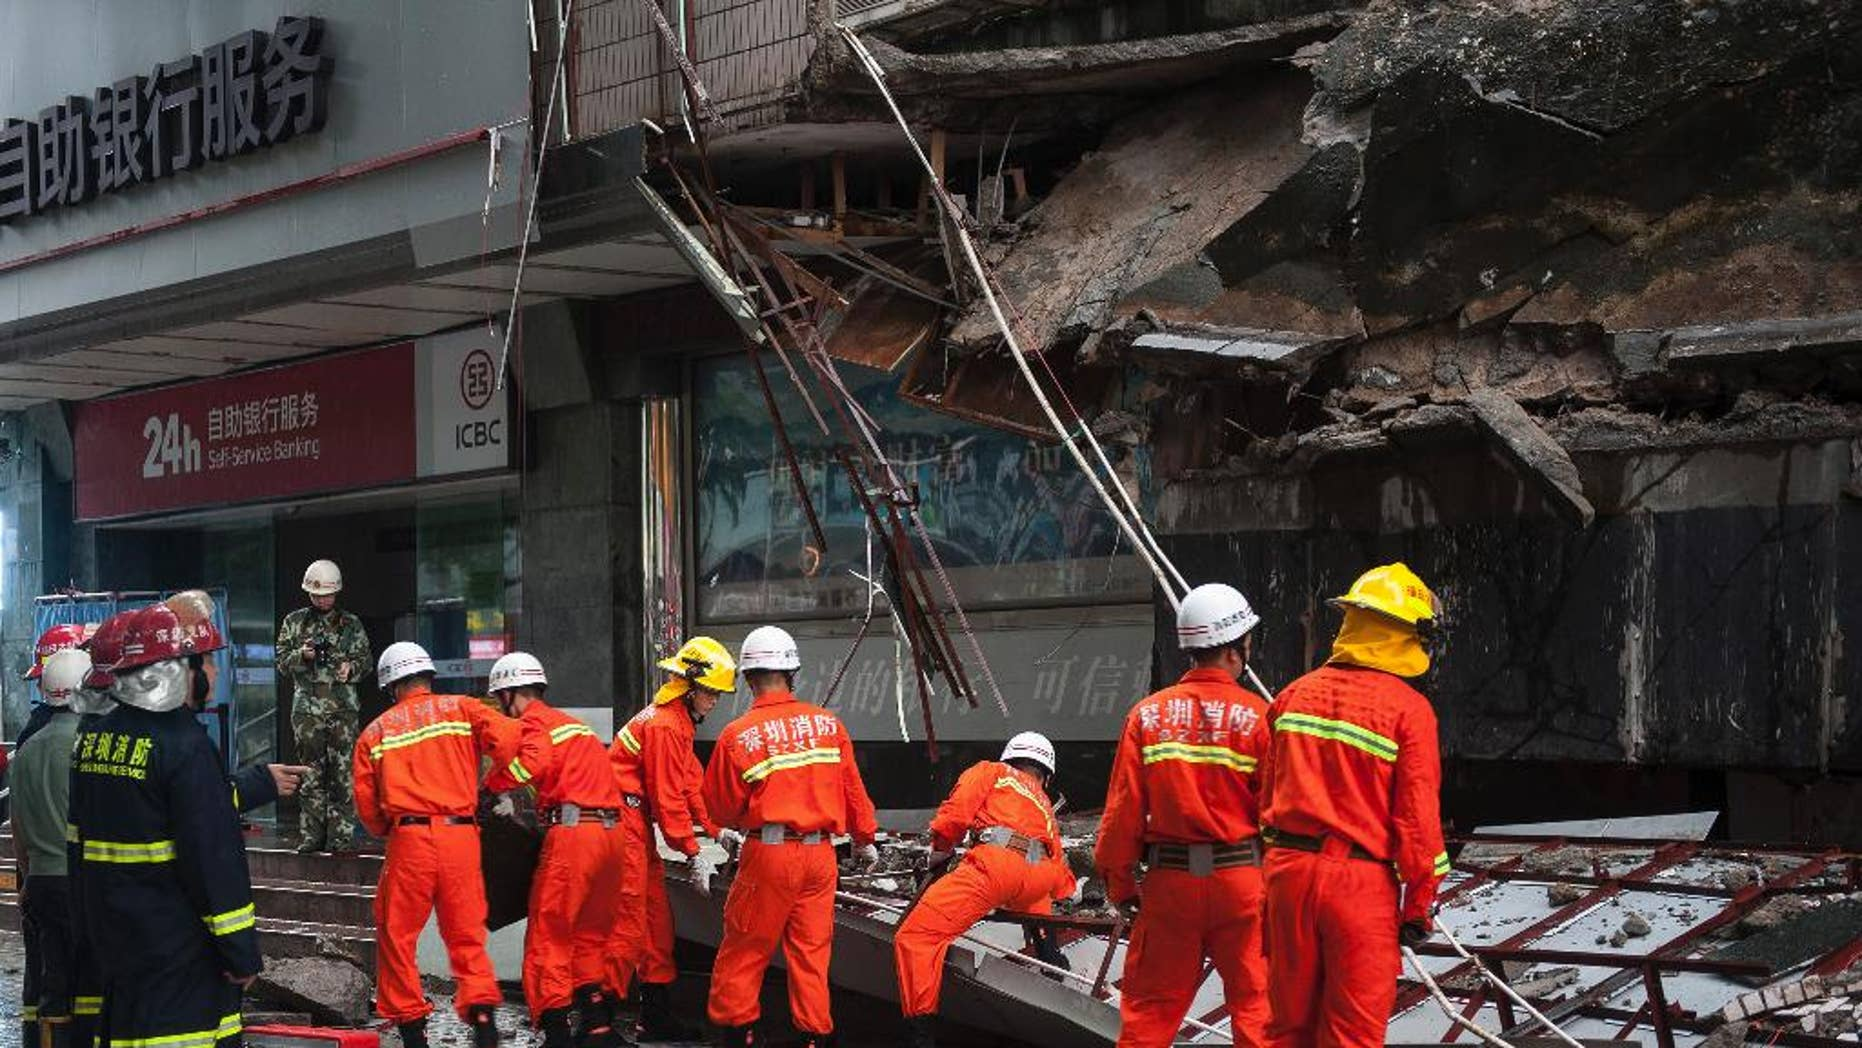 Rescuers try to remove a steal frame from a collapsed concrete roof which has killed and injured a number of people after they took shelter during heavy rains in Shenzhen in south China's Guangdong province Friday, July 18, 2014. A powerful typhoon hit the southern Chinese island of Hainan on Friday after killing tens people in the Philippines. (AP Photo) CHINA OUT